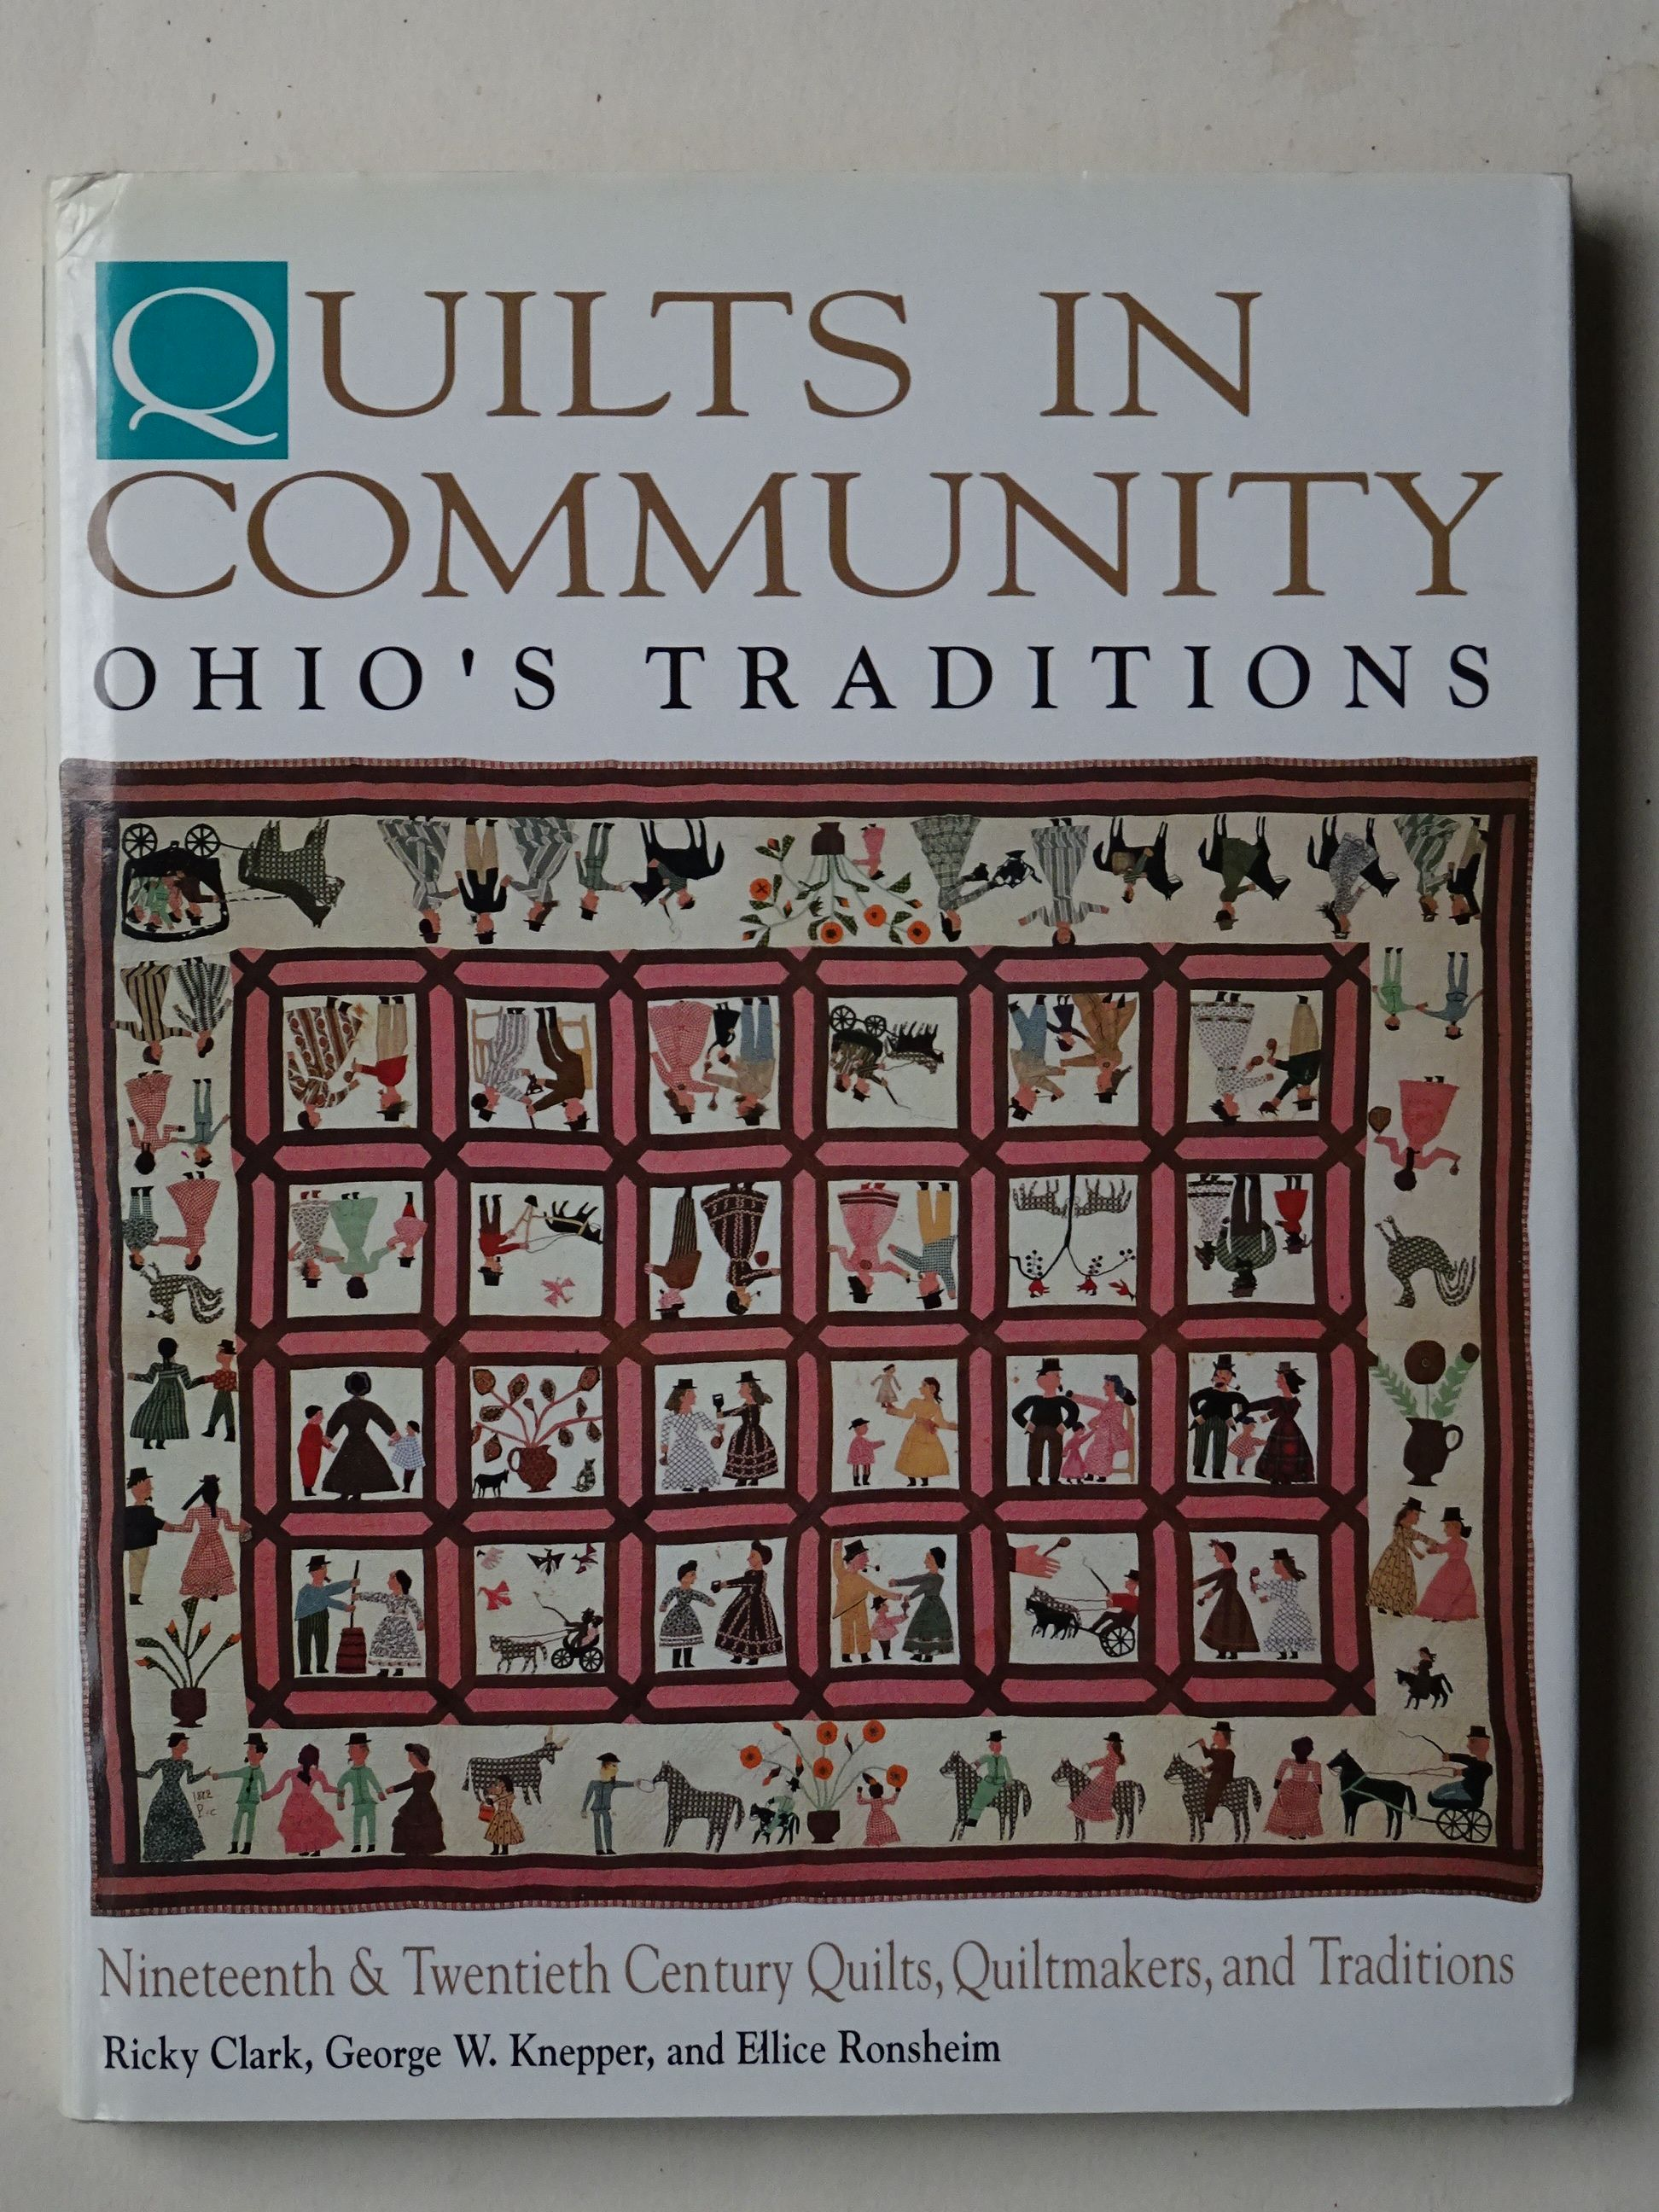 Clark, Knepper & Ronsheim  - Quilts in Community Ohio's Traditions